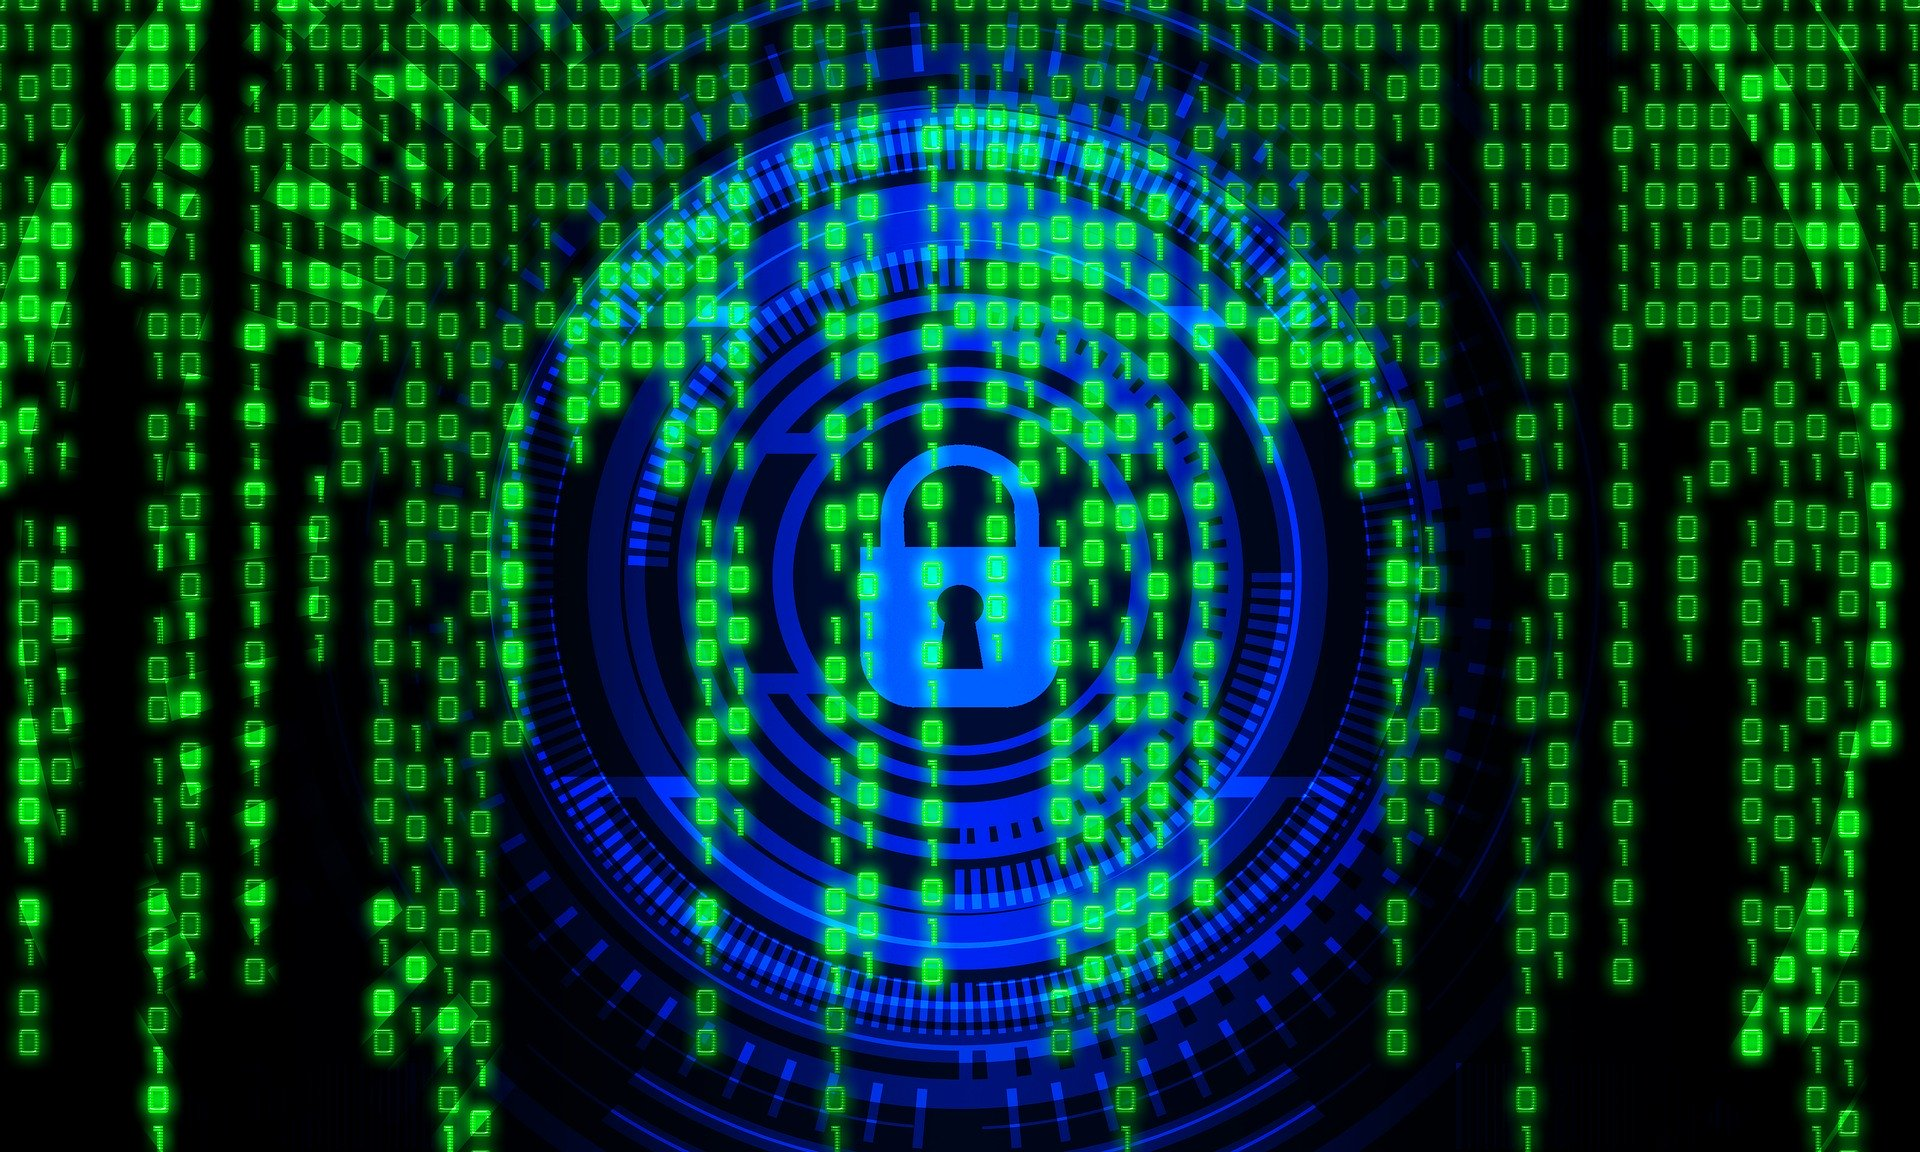 image of cyber security solutions and defences